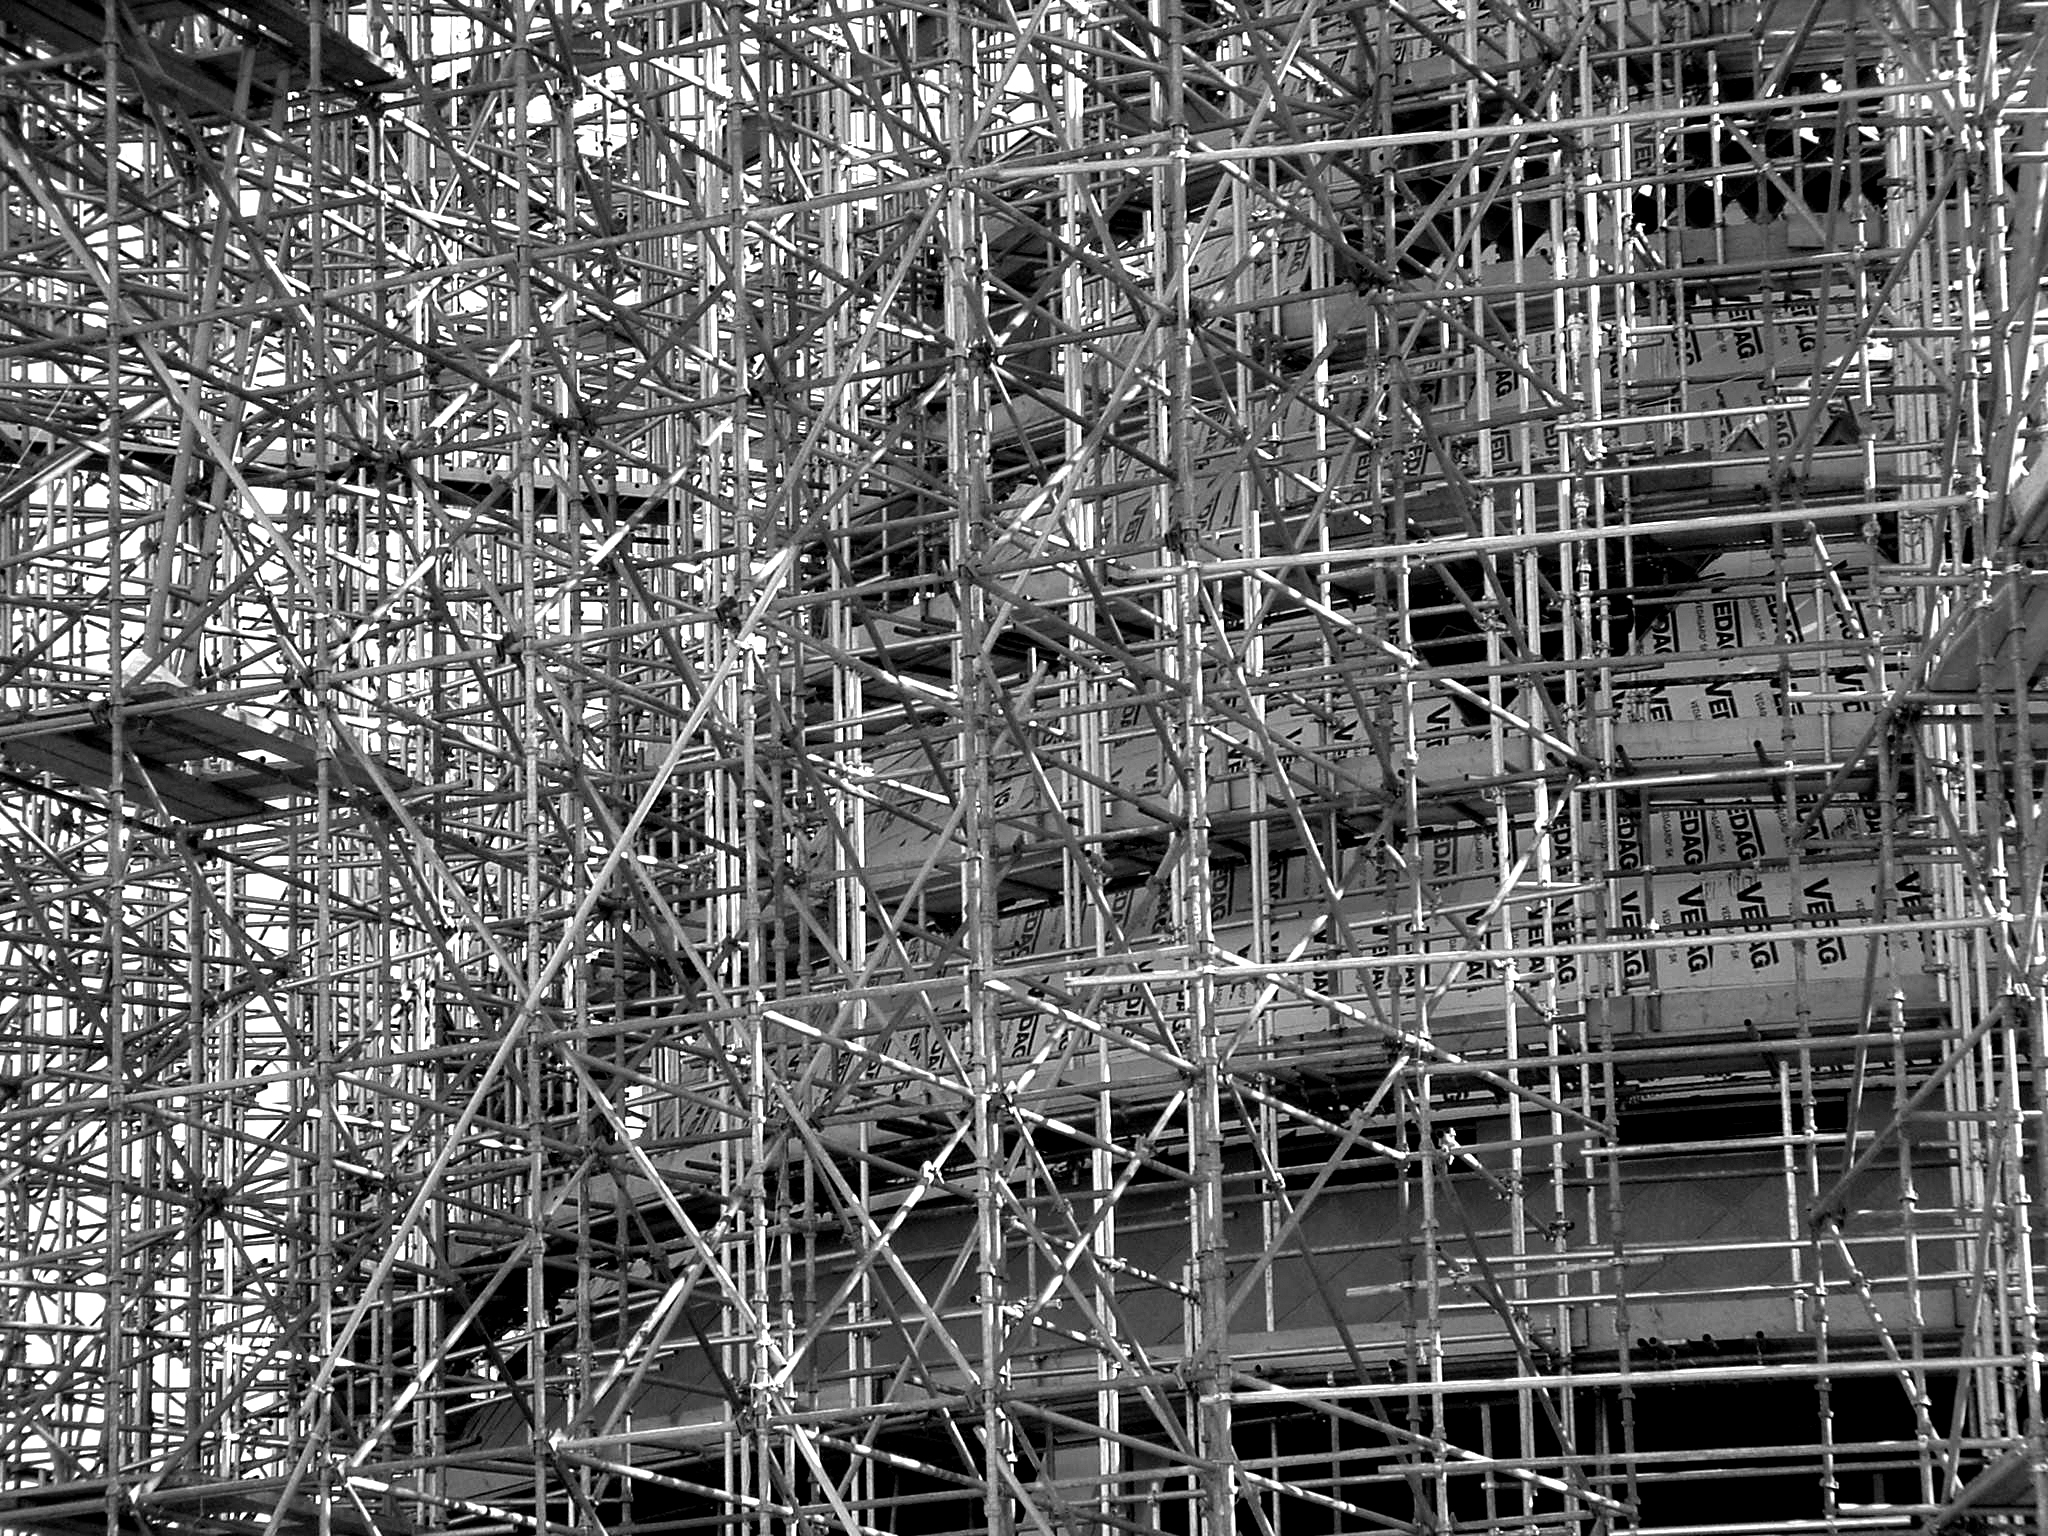 Scaffolding isn't just useful in construction